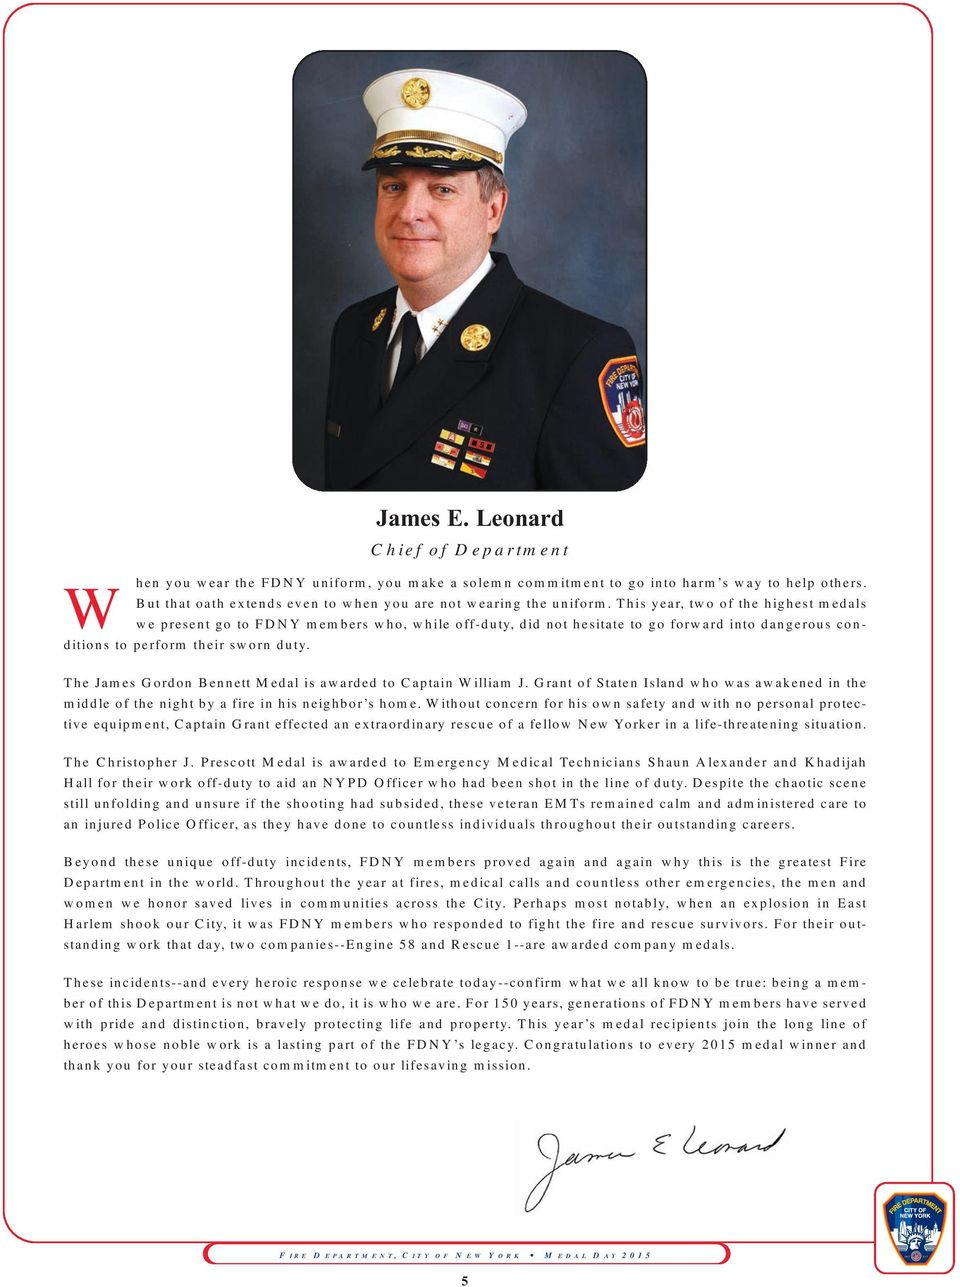 This year, two of the highest medals we present go to FDNY members who, while off-duty, did not hesitate to go forward into dangerous conditions to perform their sworn duty.